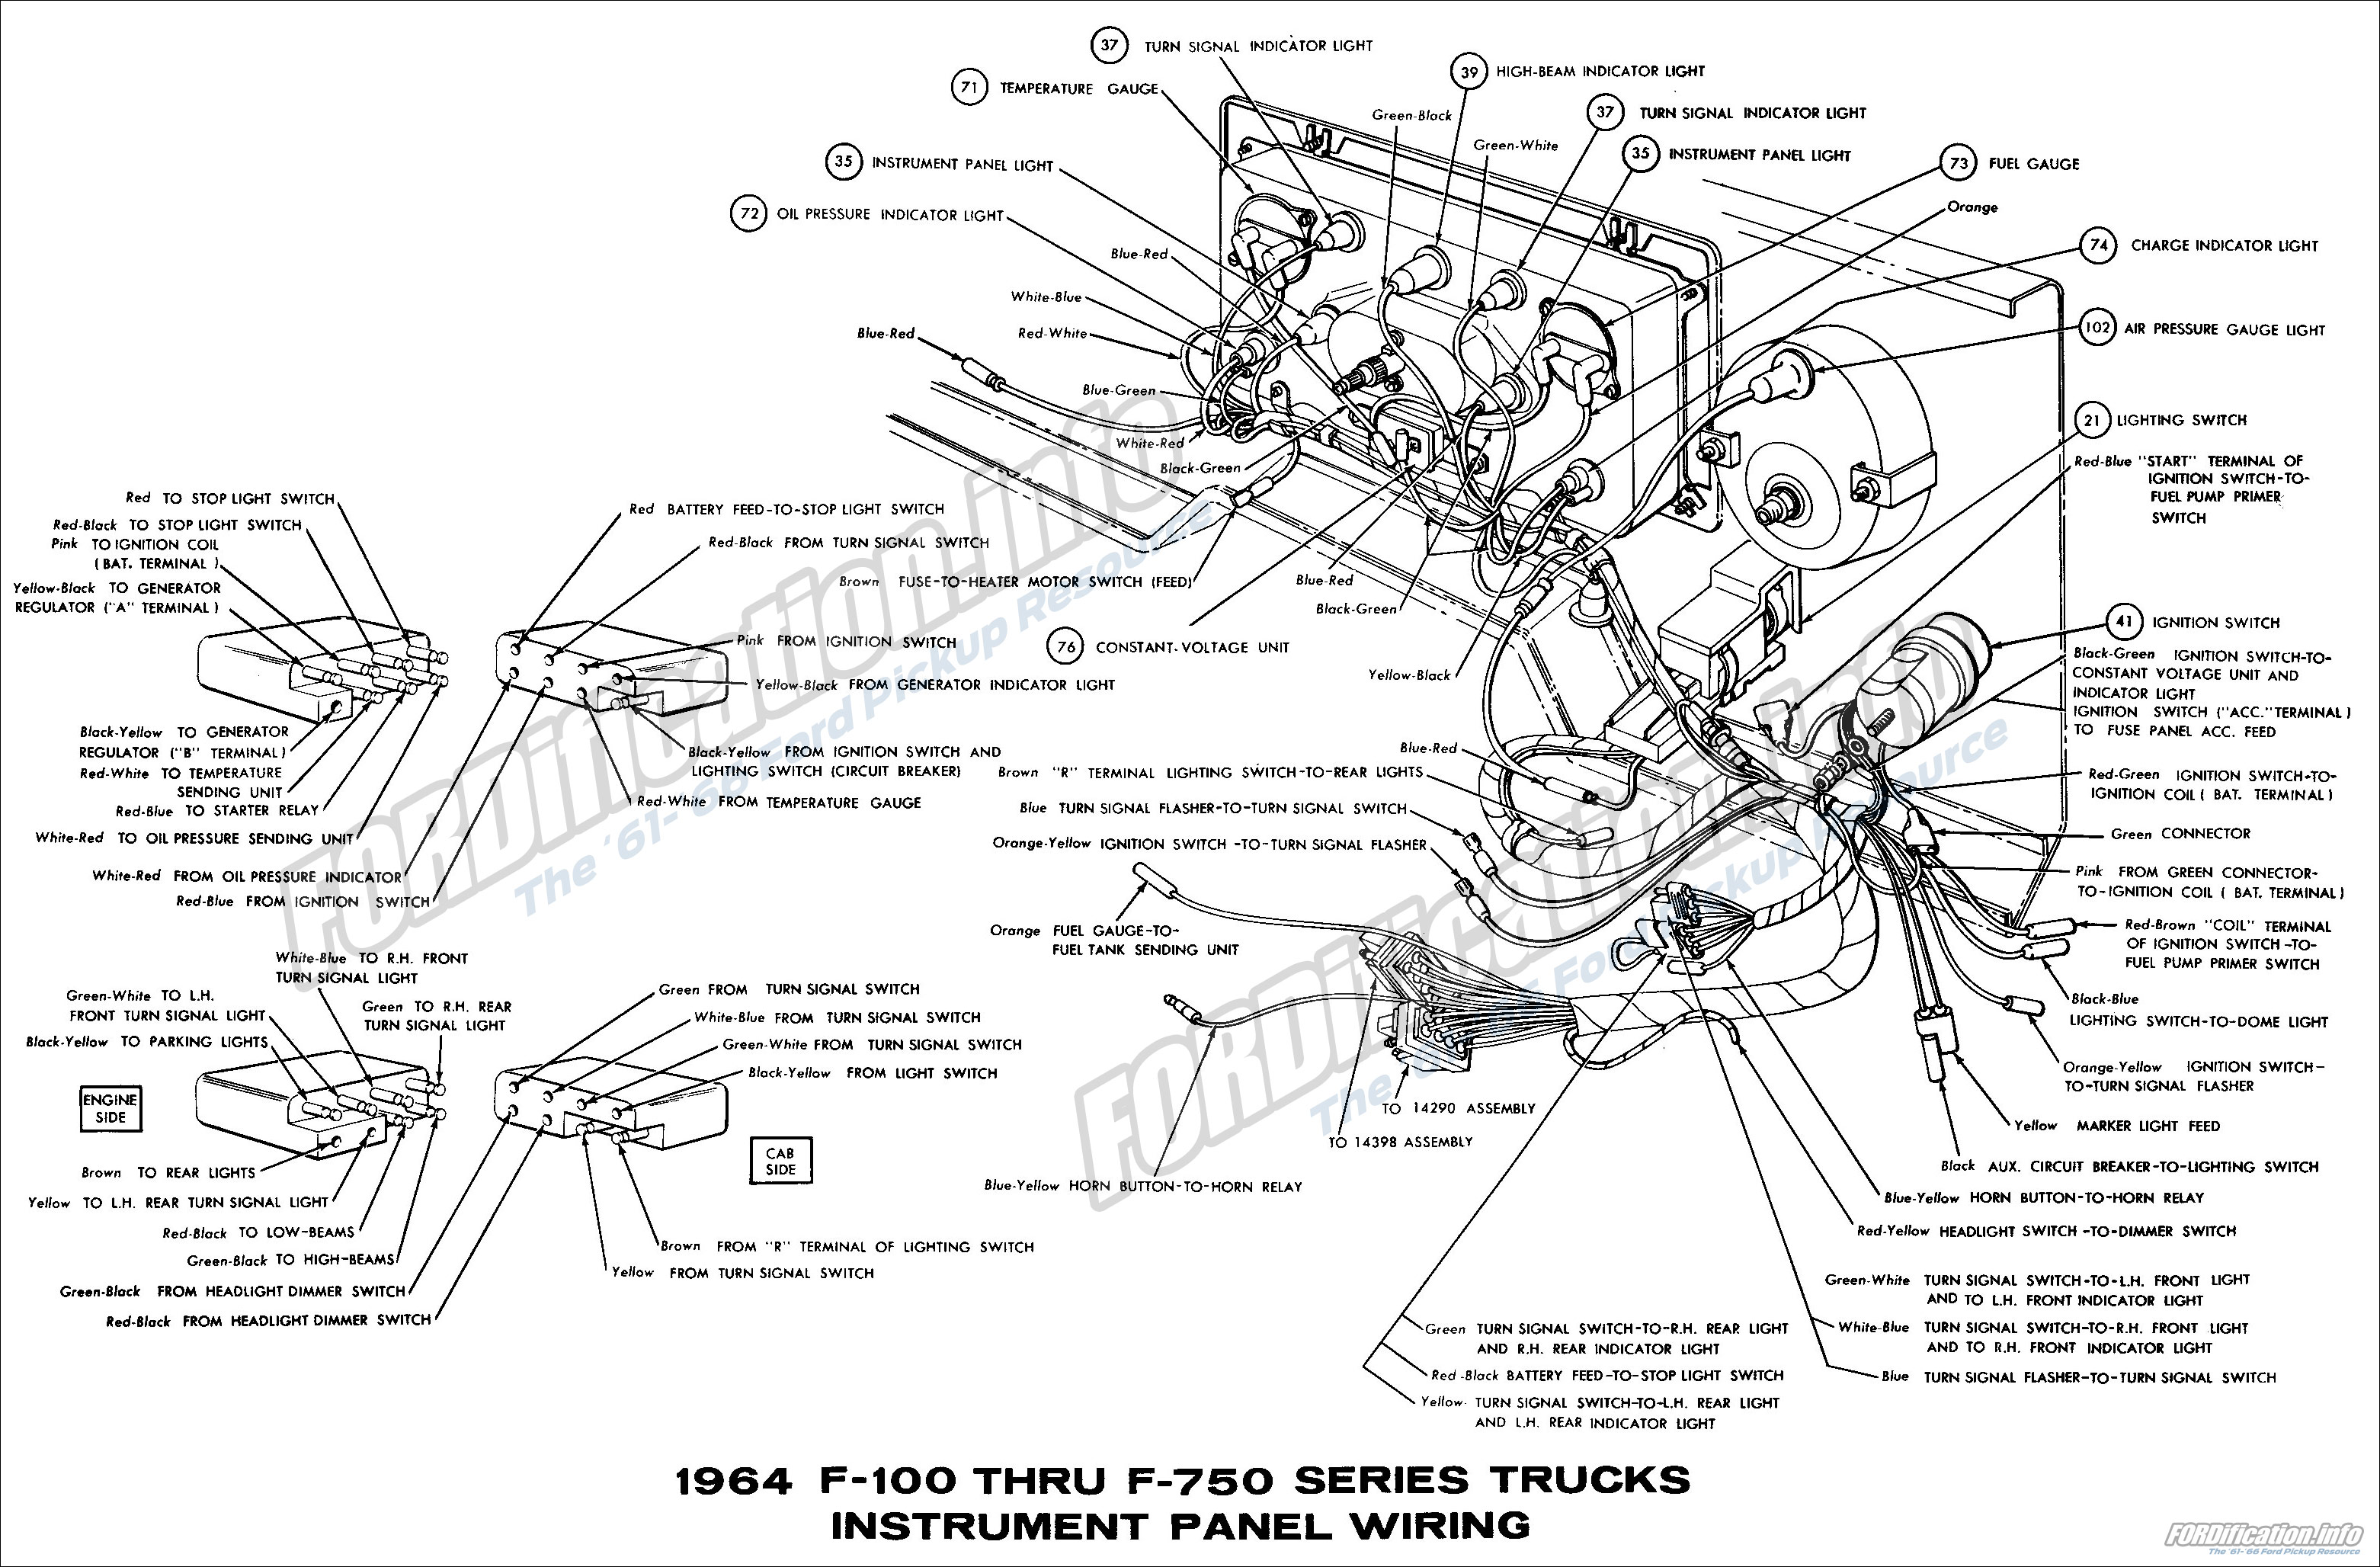 1964_02 1964 ford truck wiring diagrams fordification info the '61 '66 1964 ford f100 wiring diagram at crackthecode.co